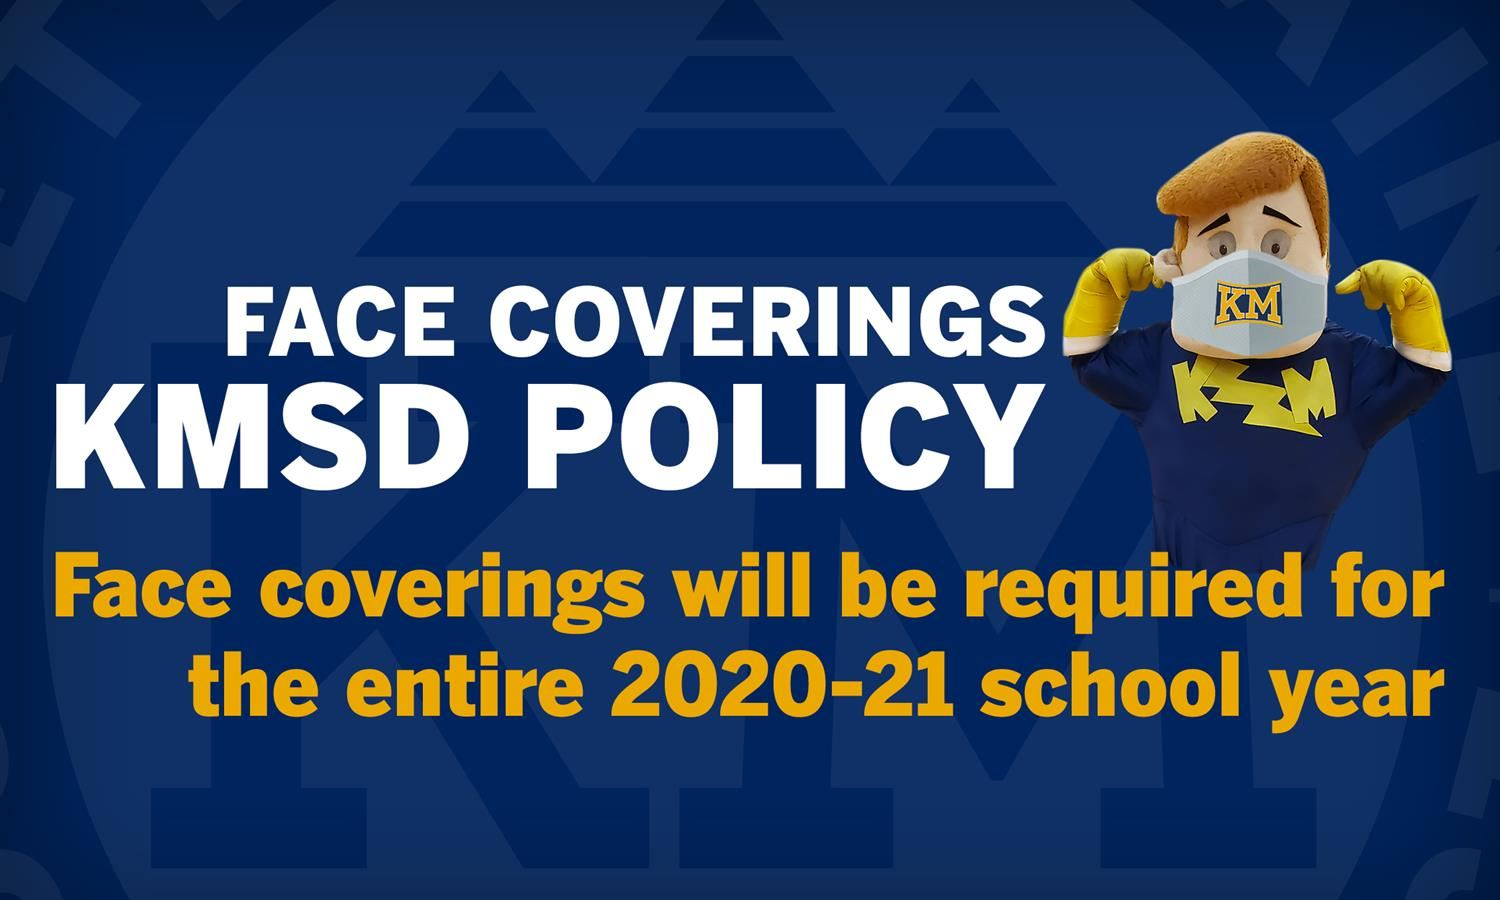 Face Coverings Policy To Remain For Entire 2020-21 School Year